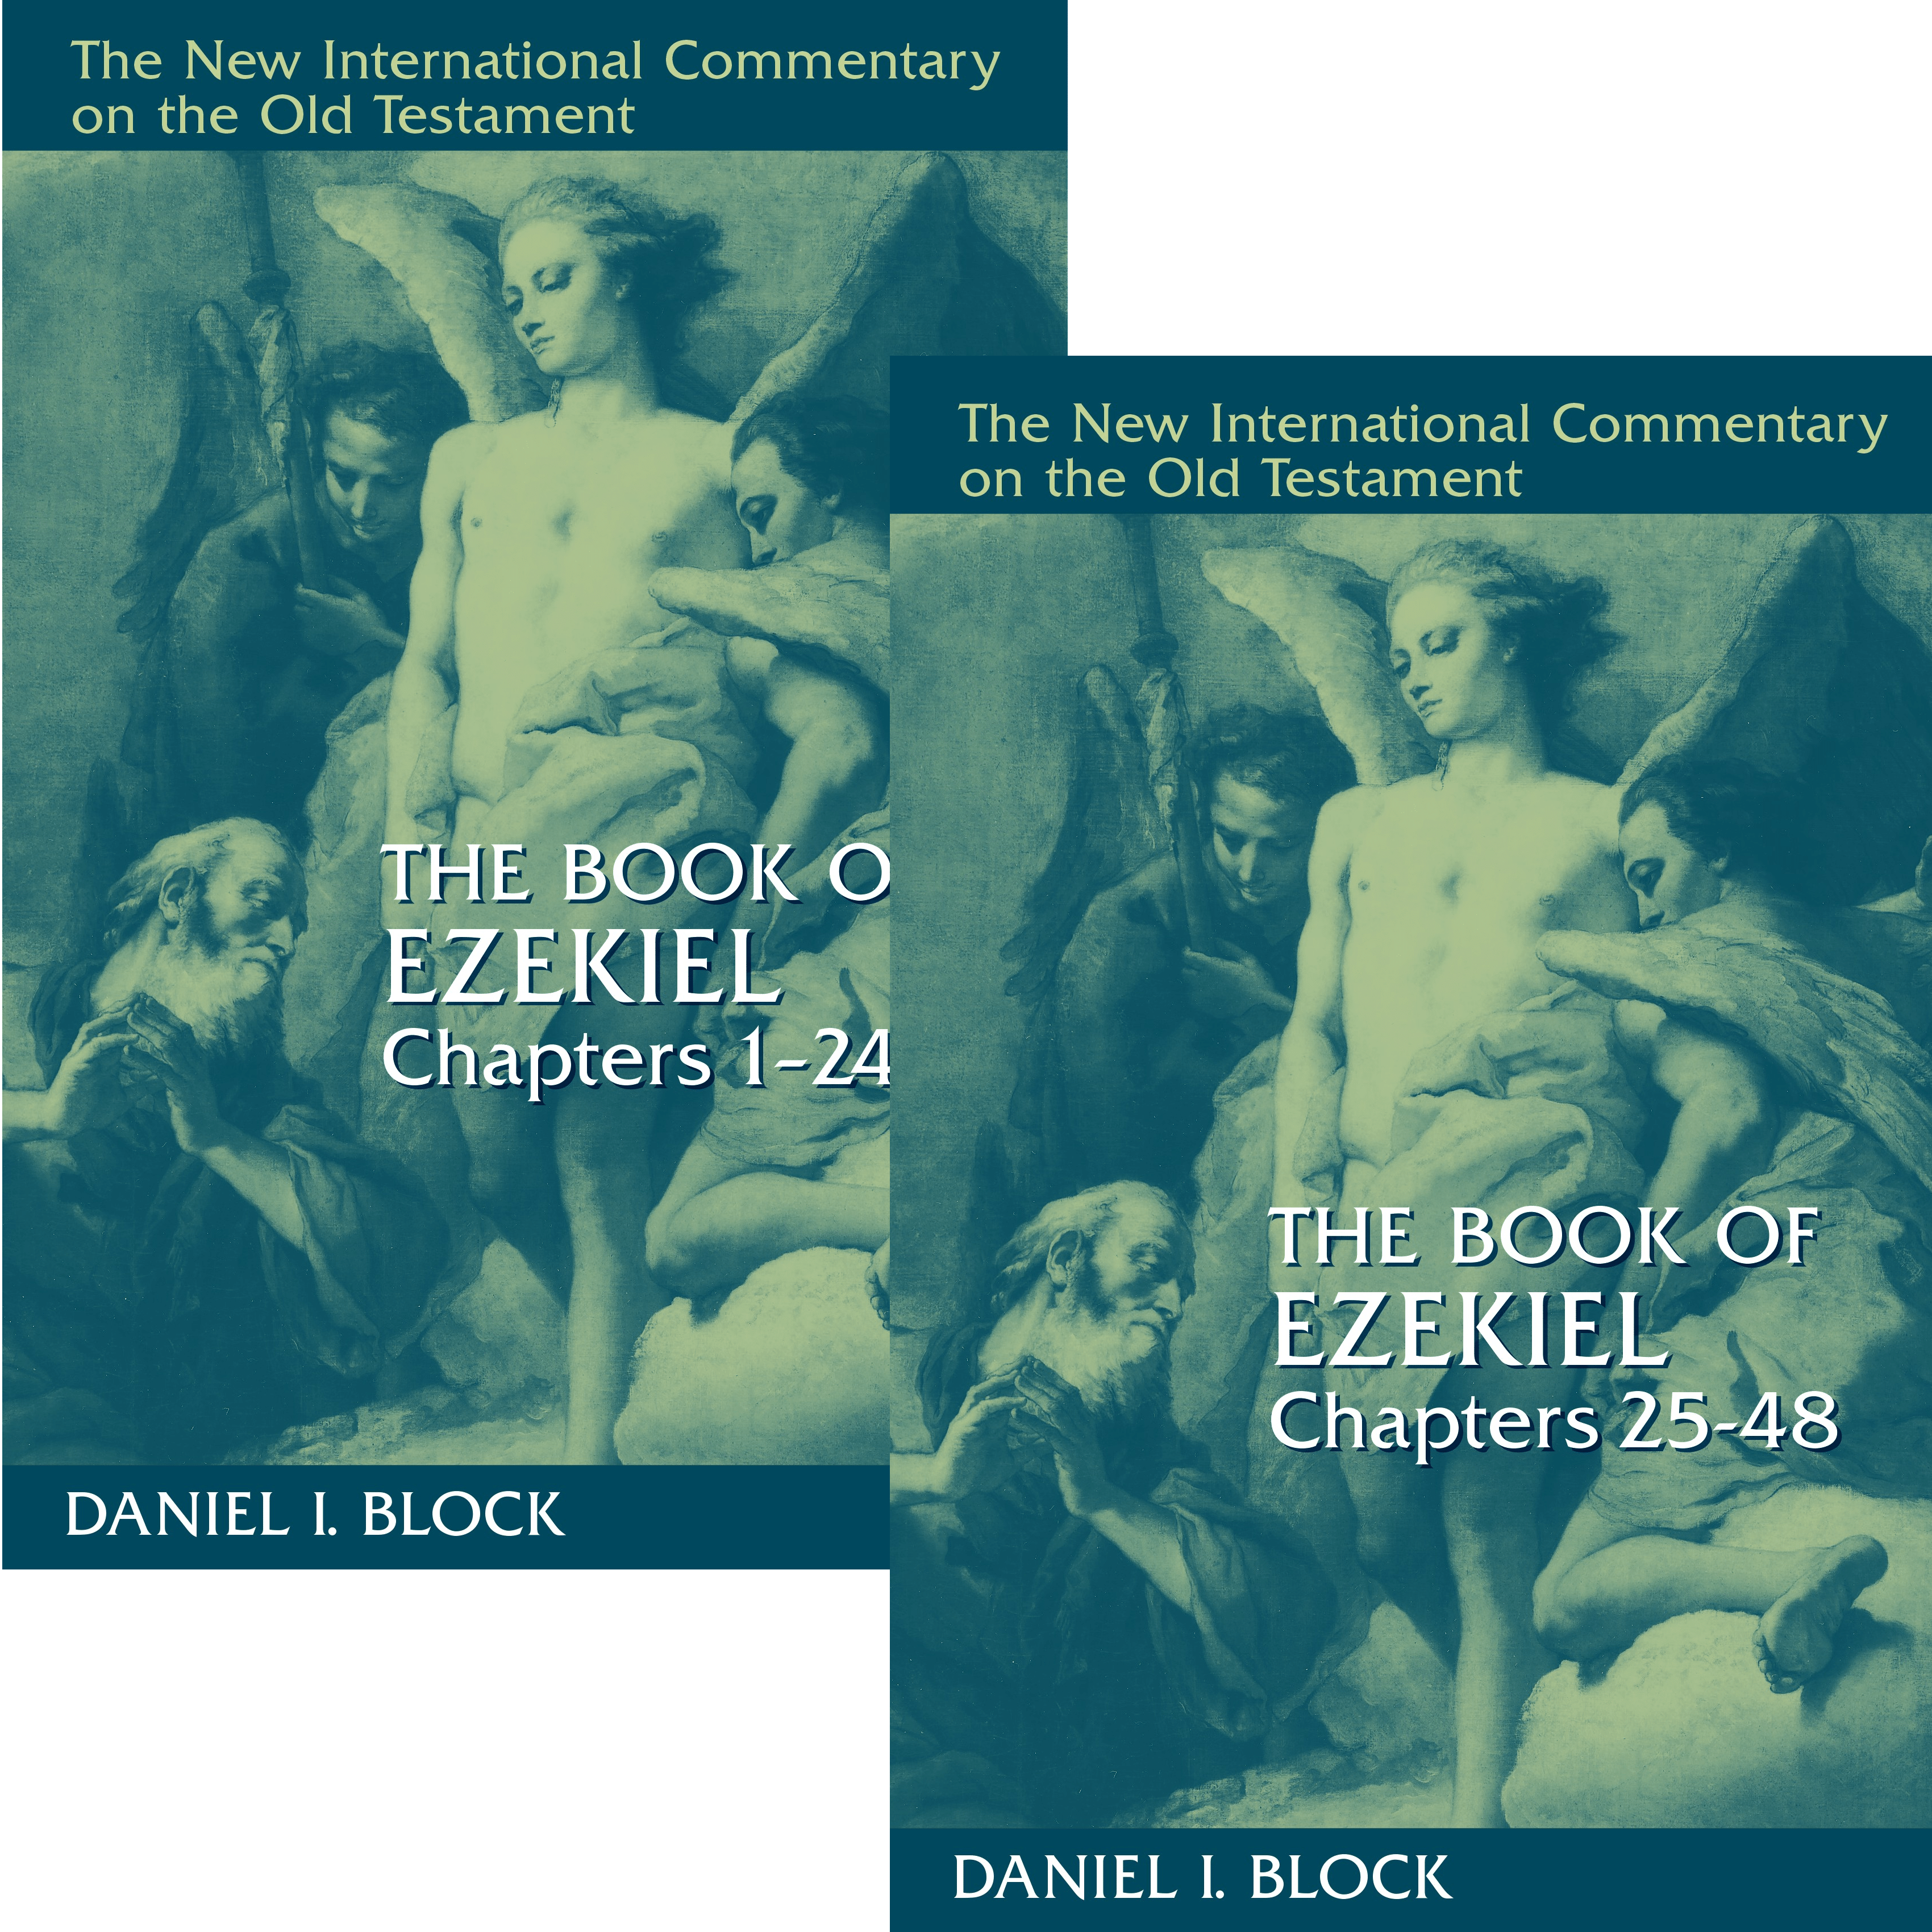 The Book of Ezekiel, 2 vols. (The New International Commentary on the Old Testament | NICOT)